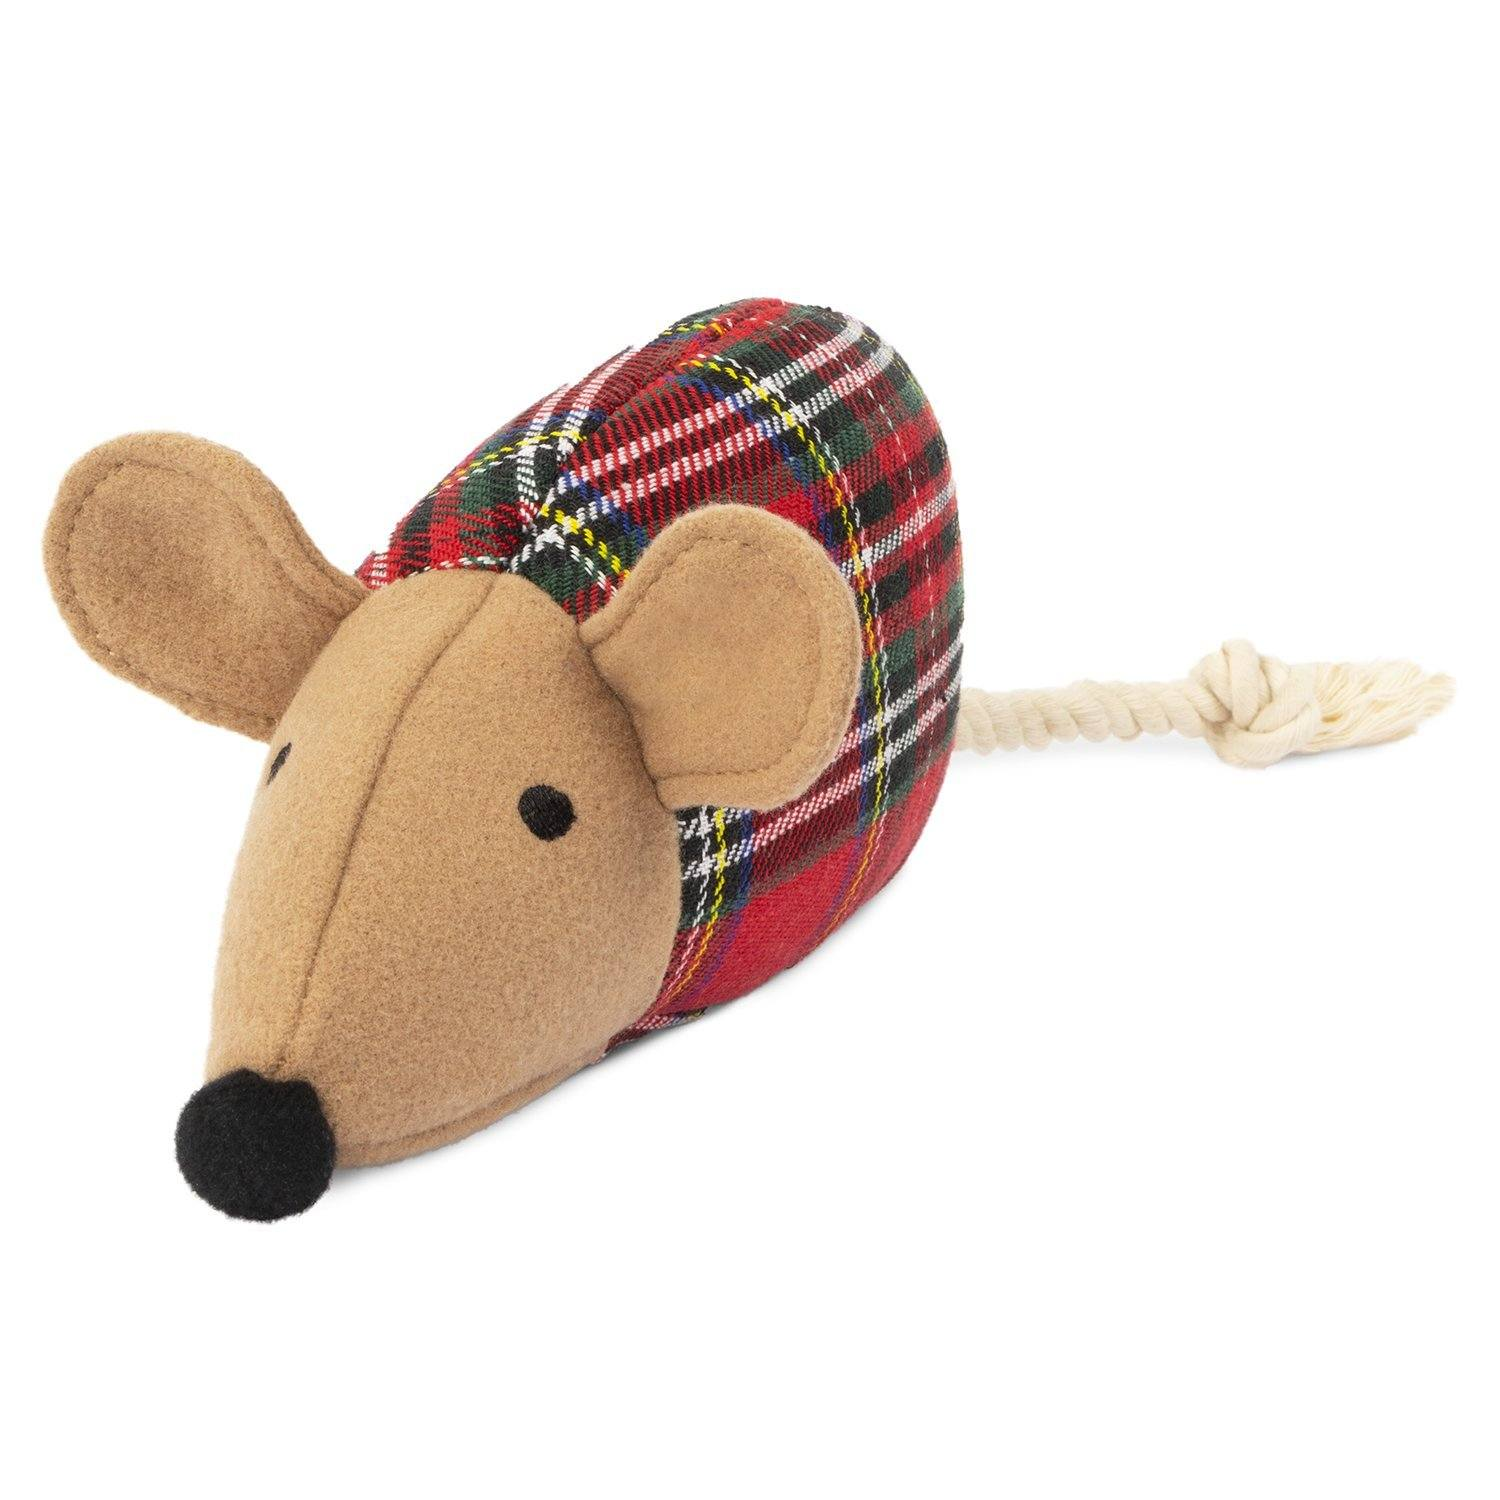 Plush Toy - Plaid Mouse Dog Toy